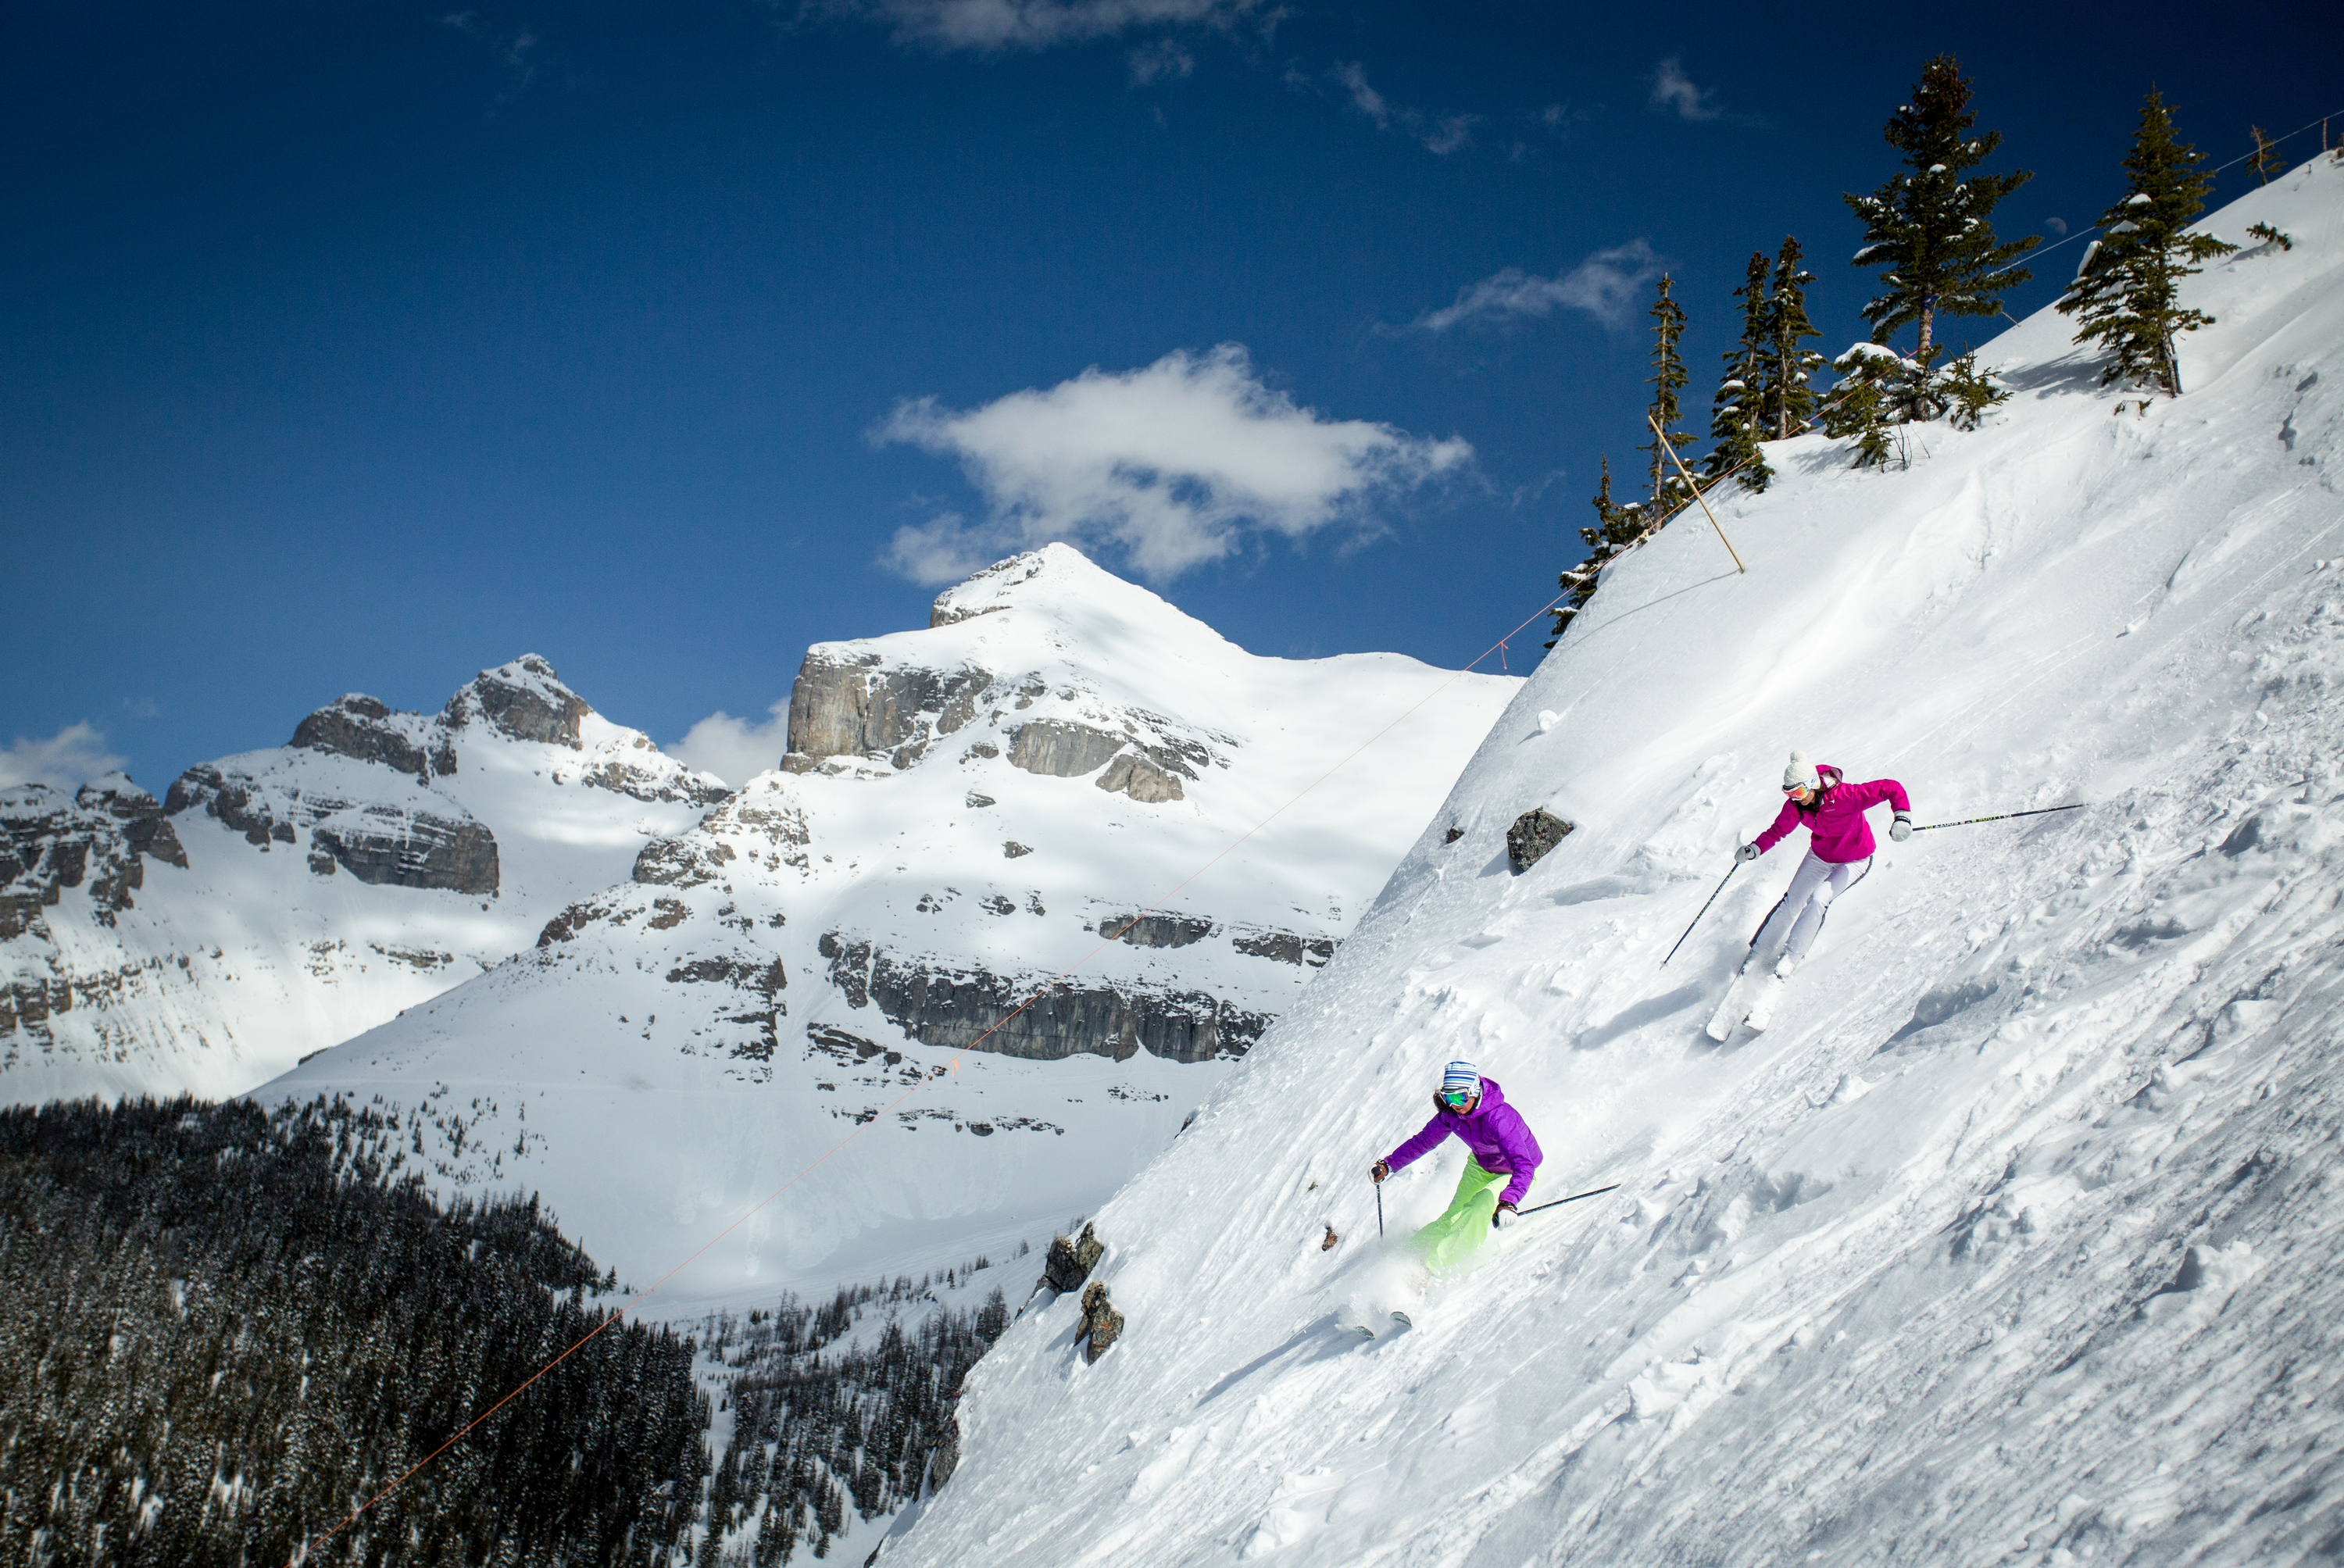 What S New In Banff Lake Louise This Winter First Tracks